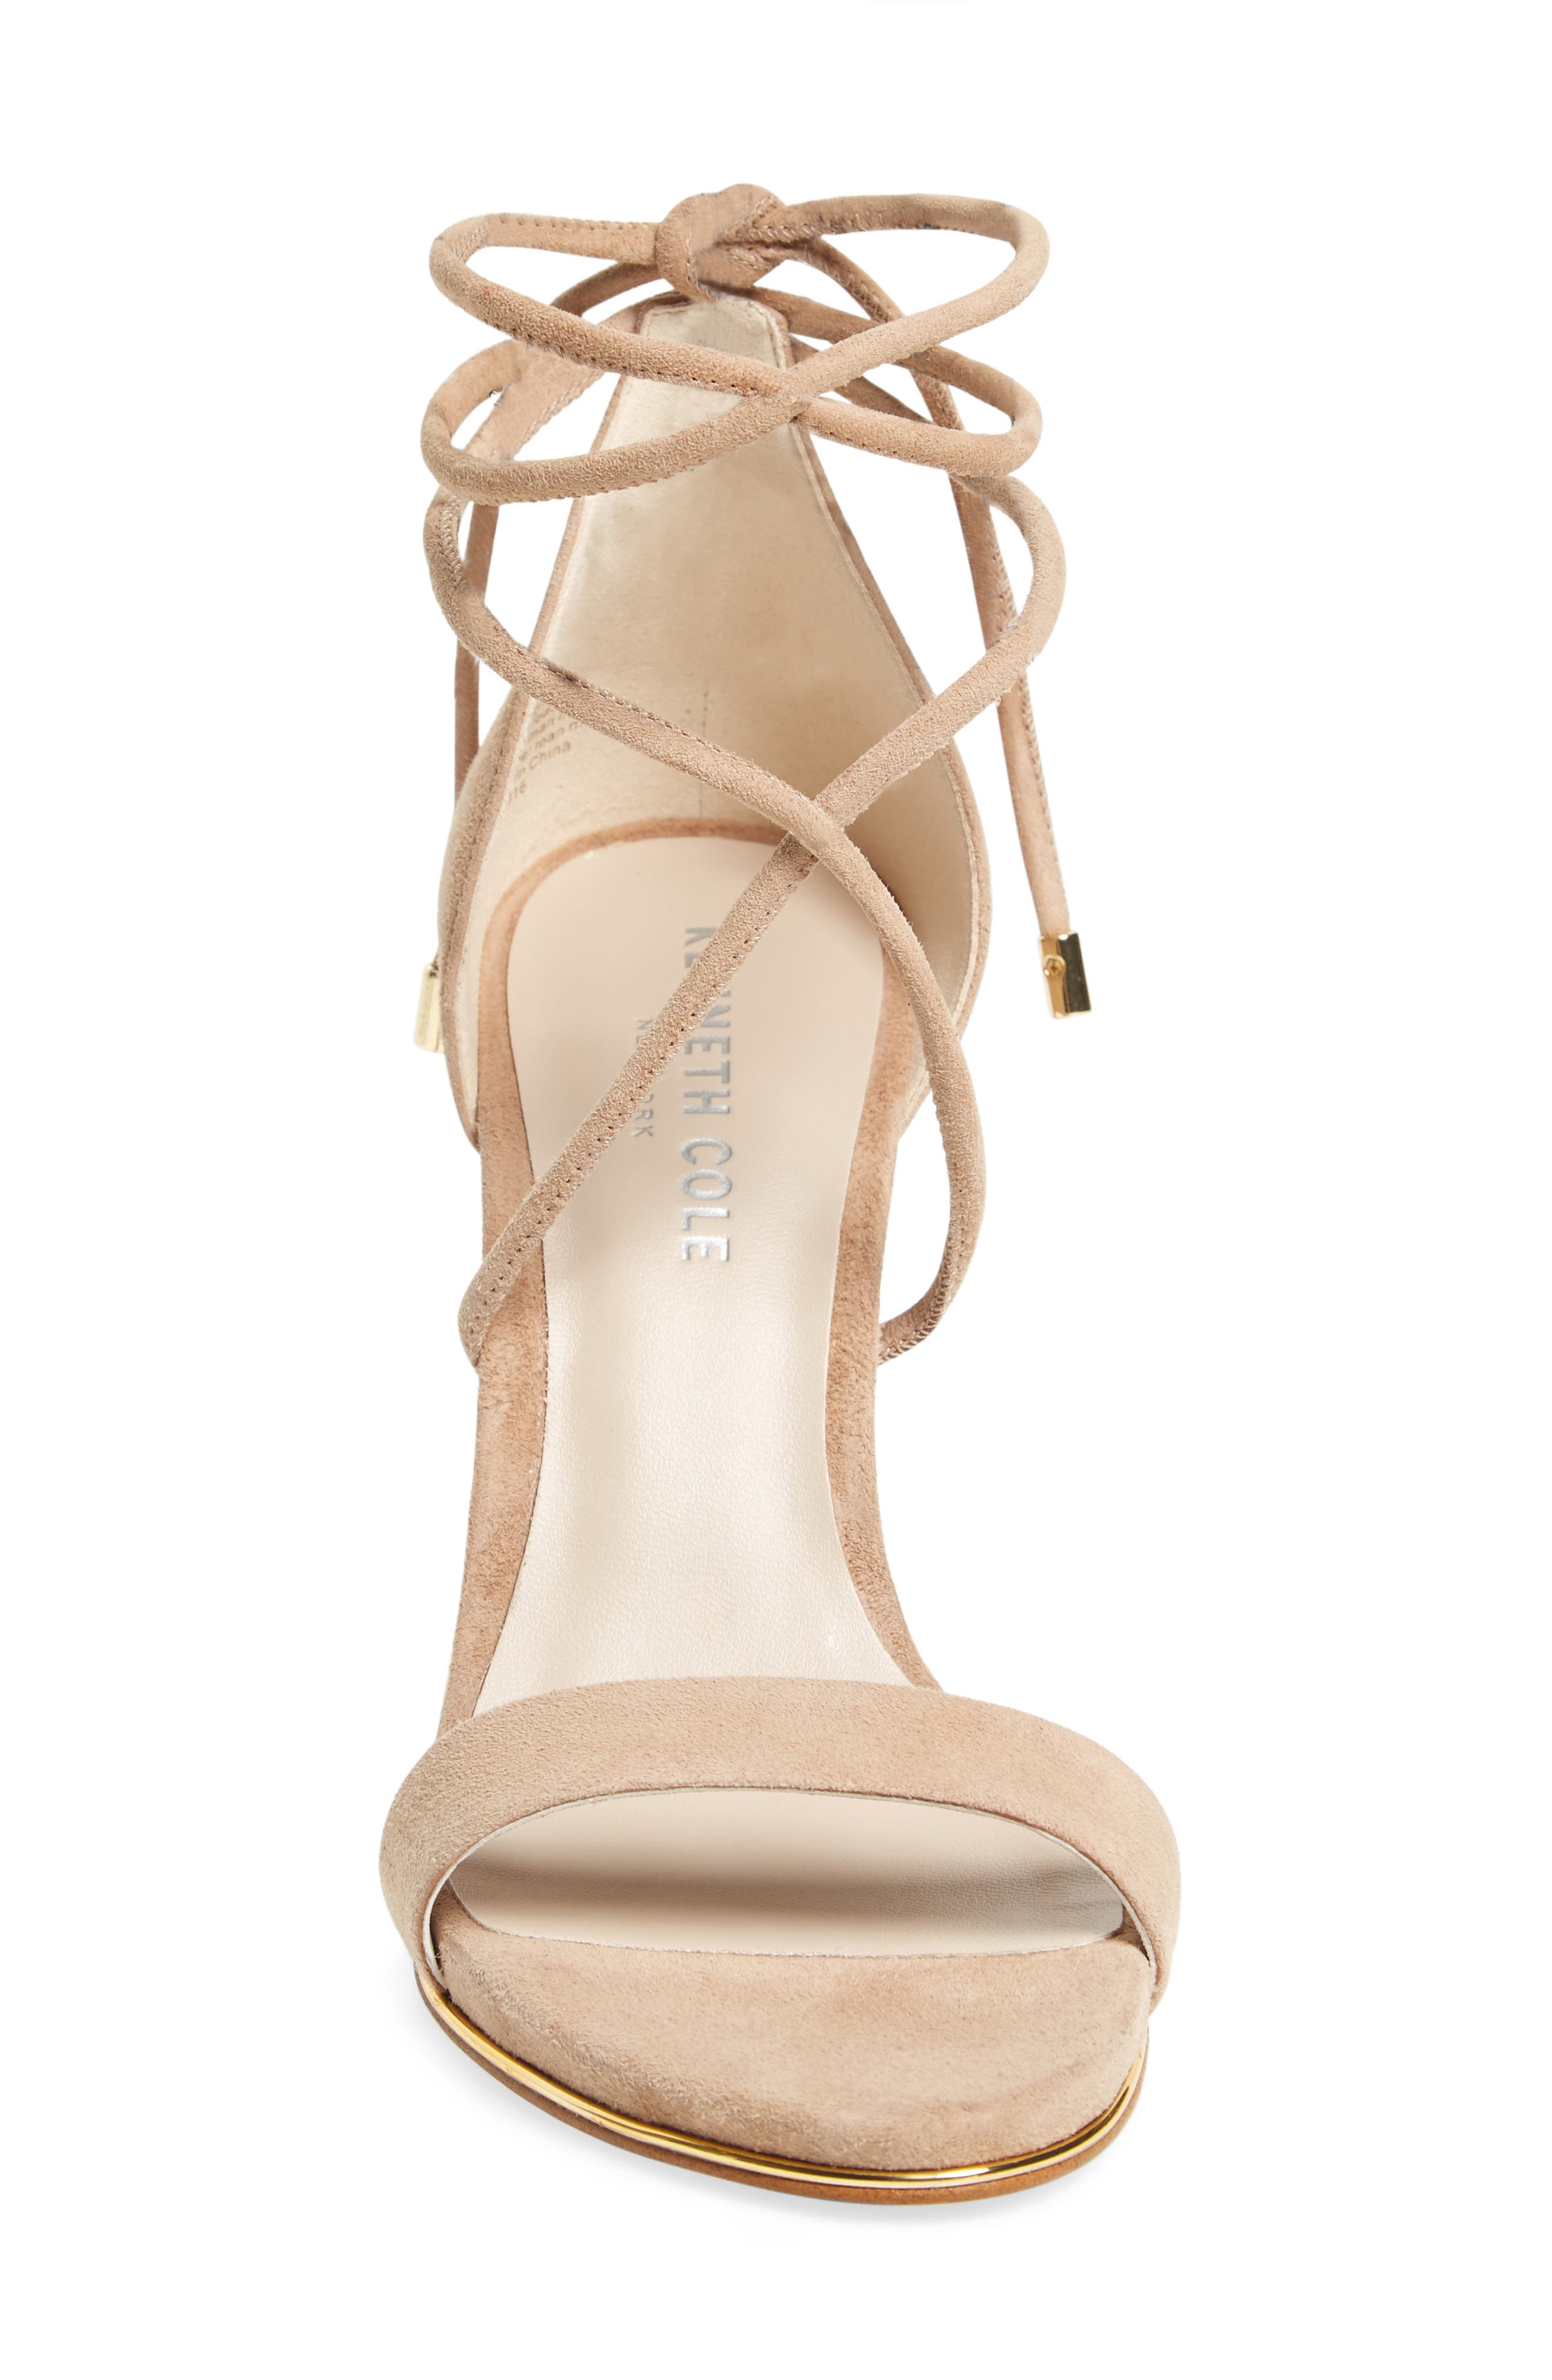 KENNETH COLE NEW YORK, Berry Wraparound Sandal, Alternate thumbnail 3, color, ALMOND SUEDE